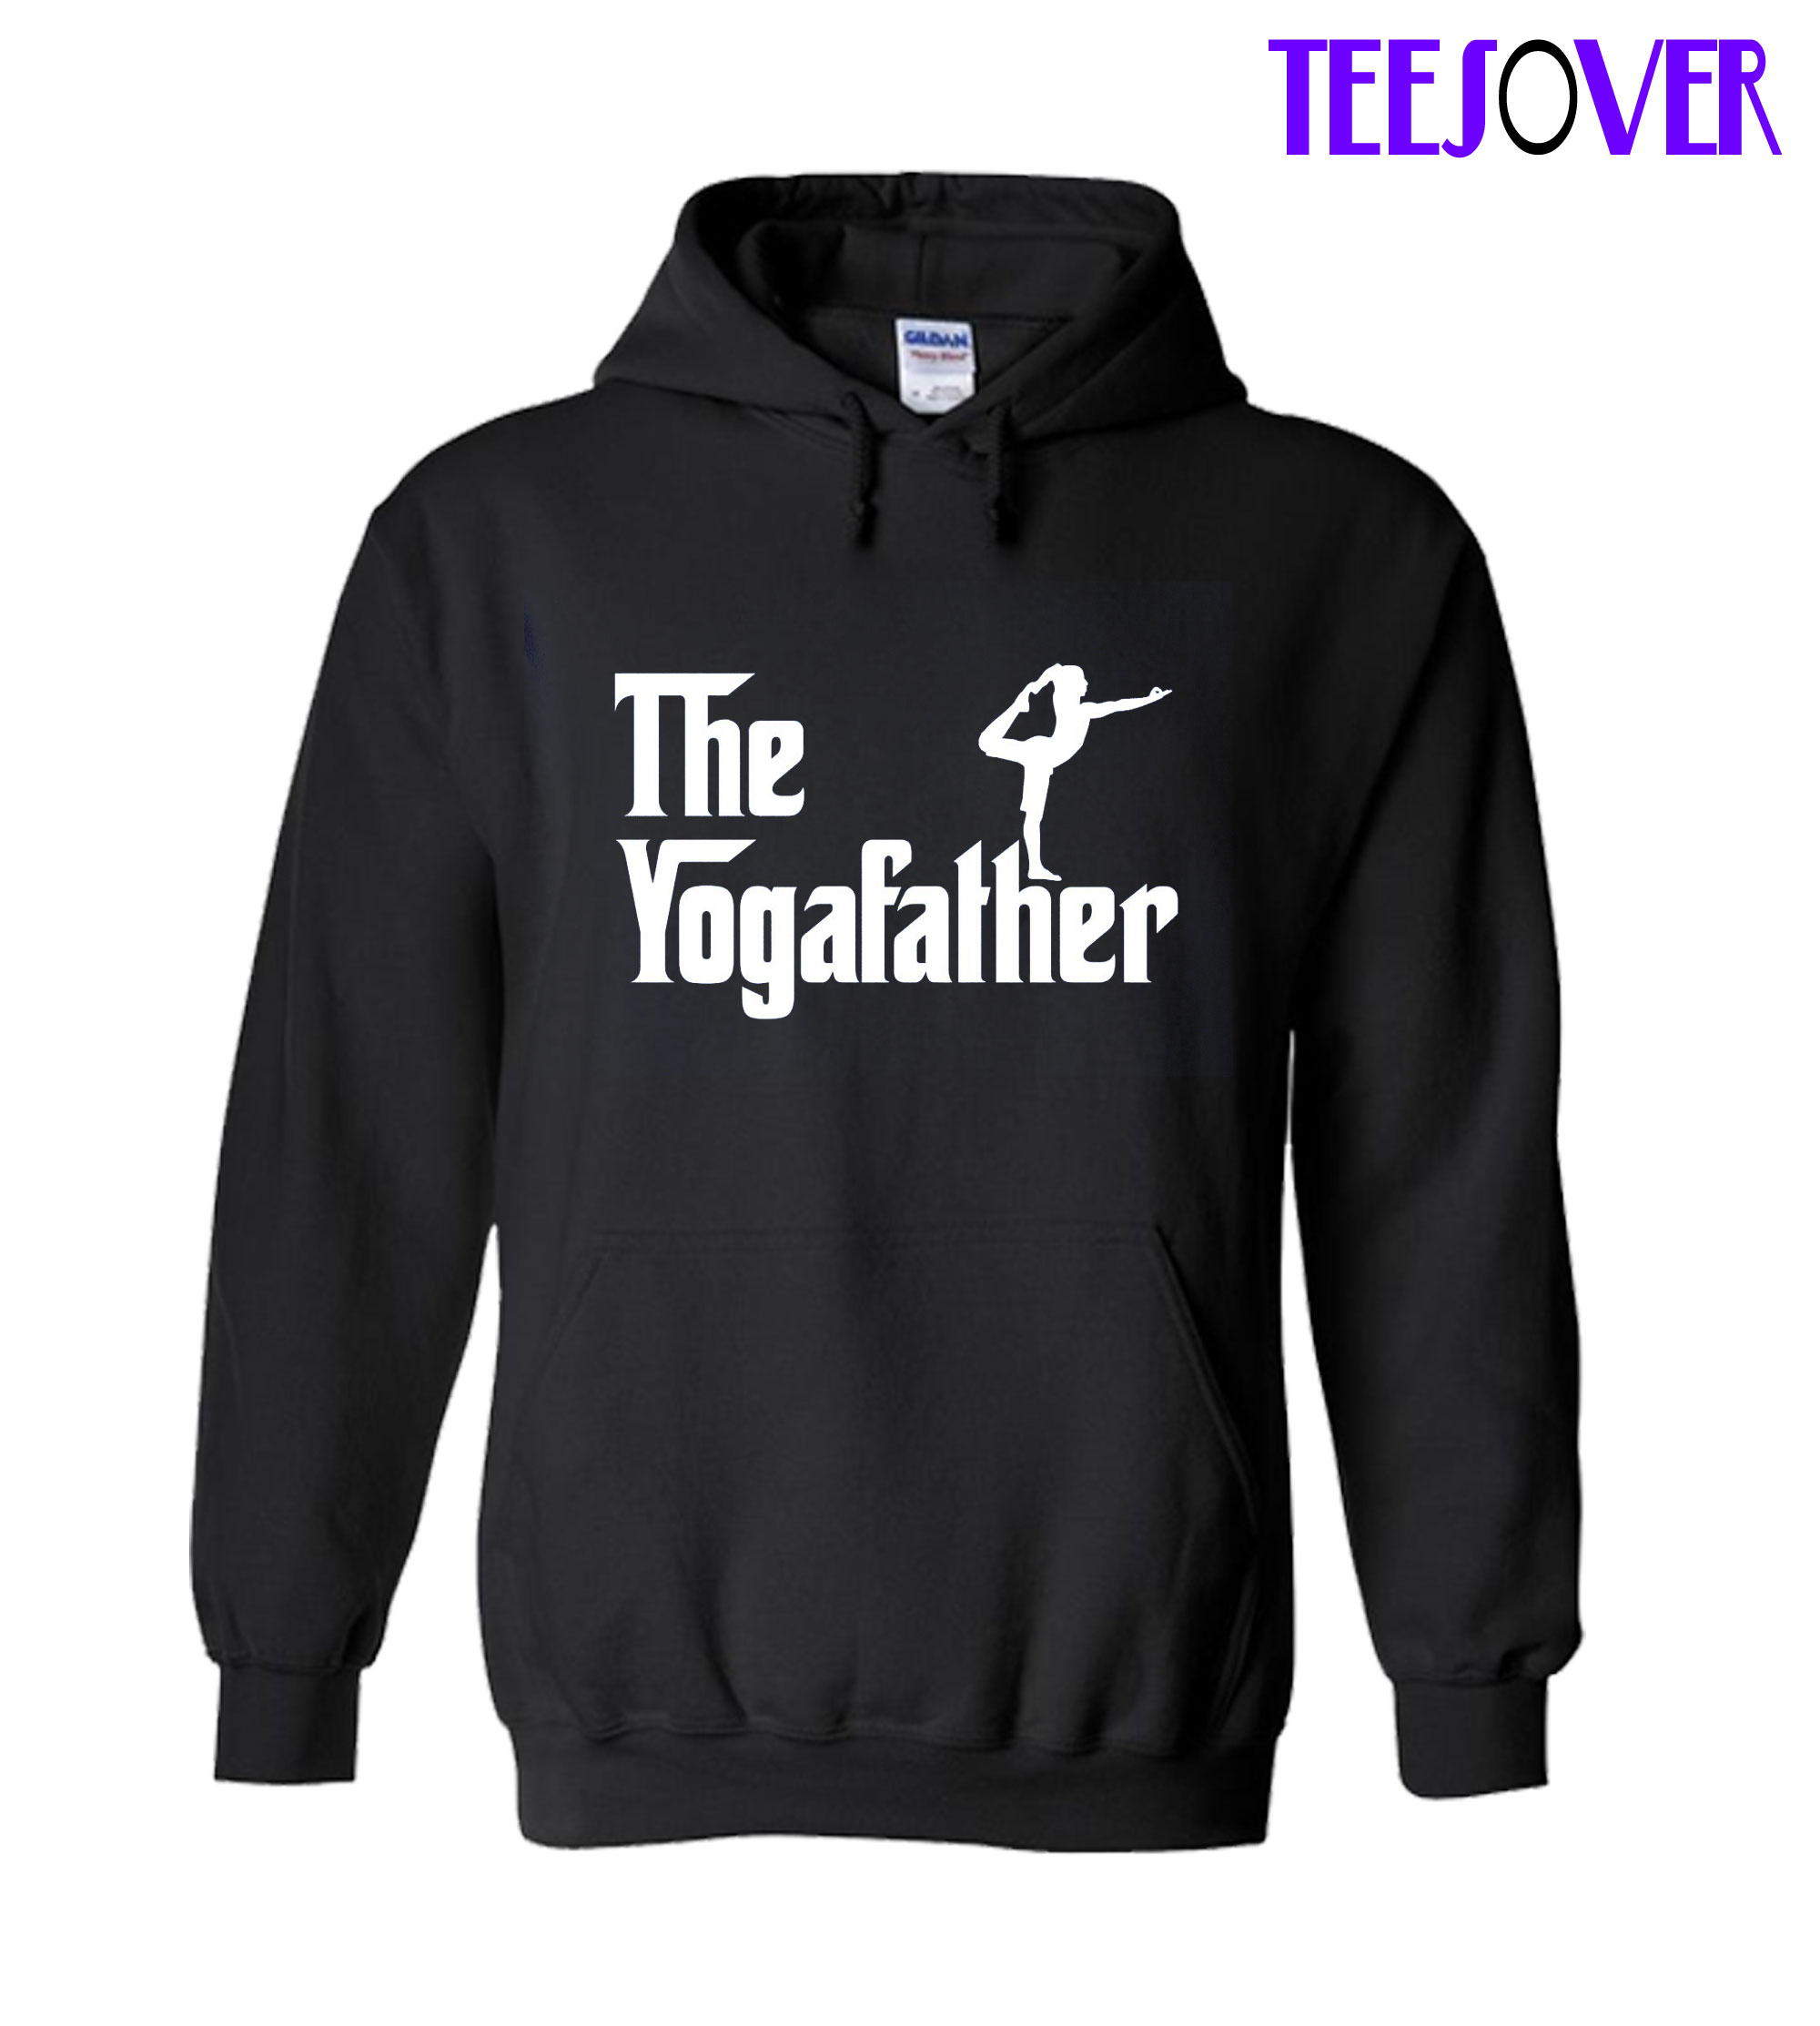 The Yogafather Hoodie